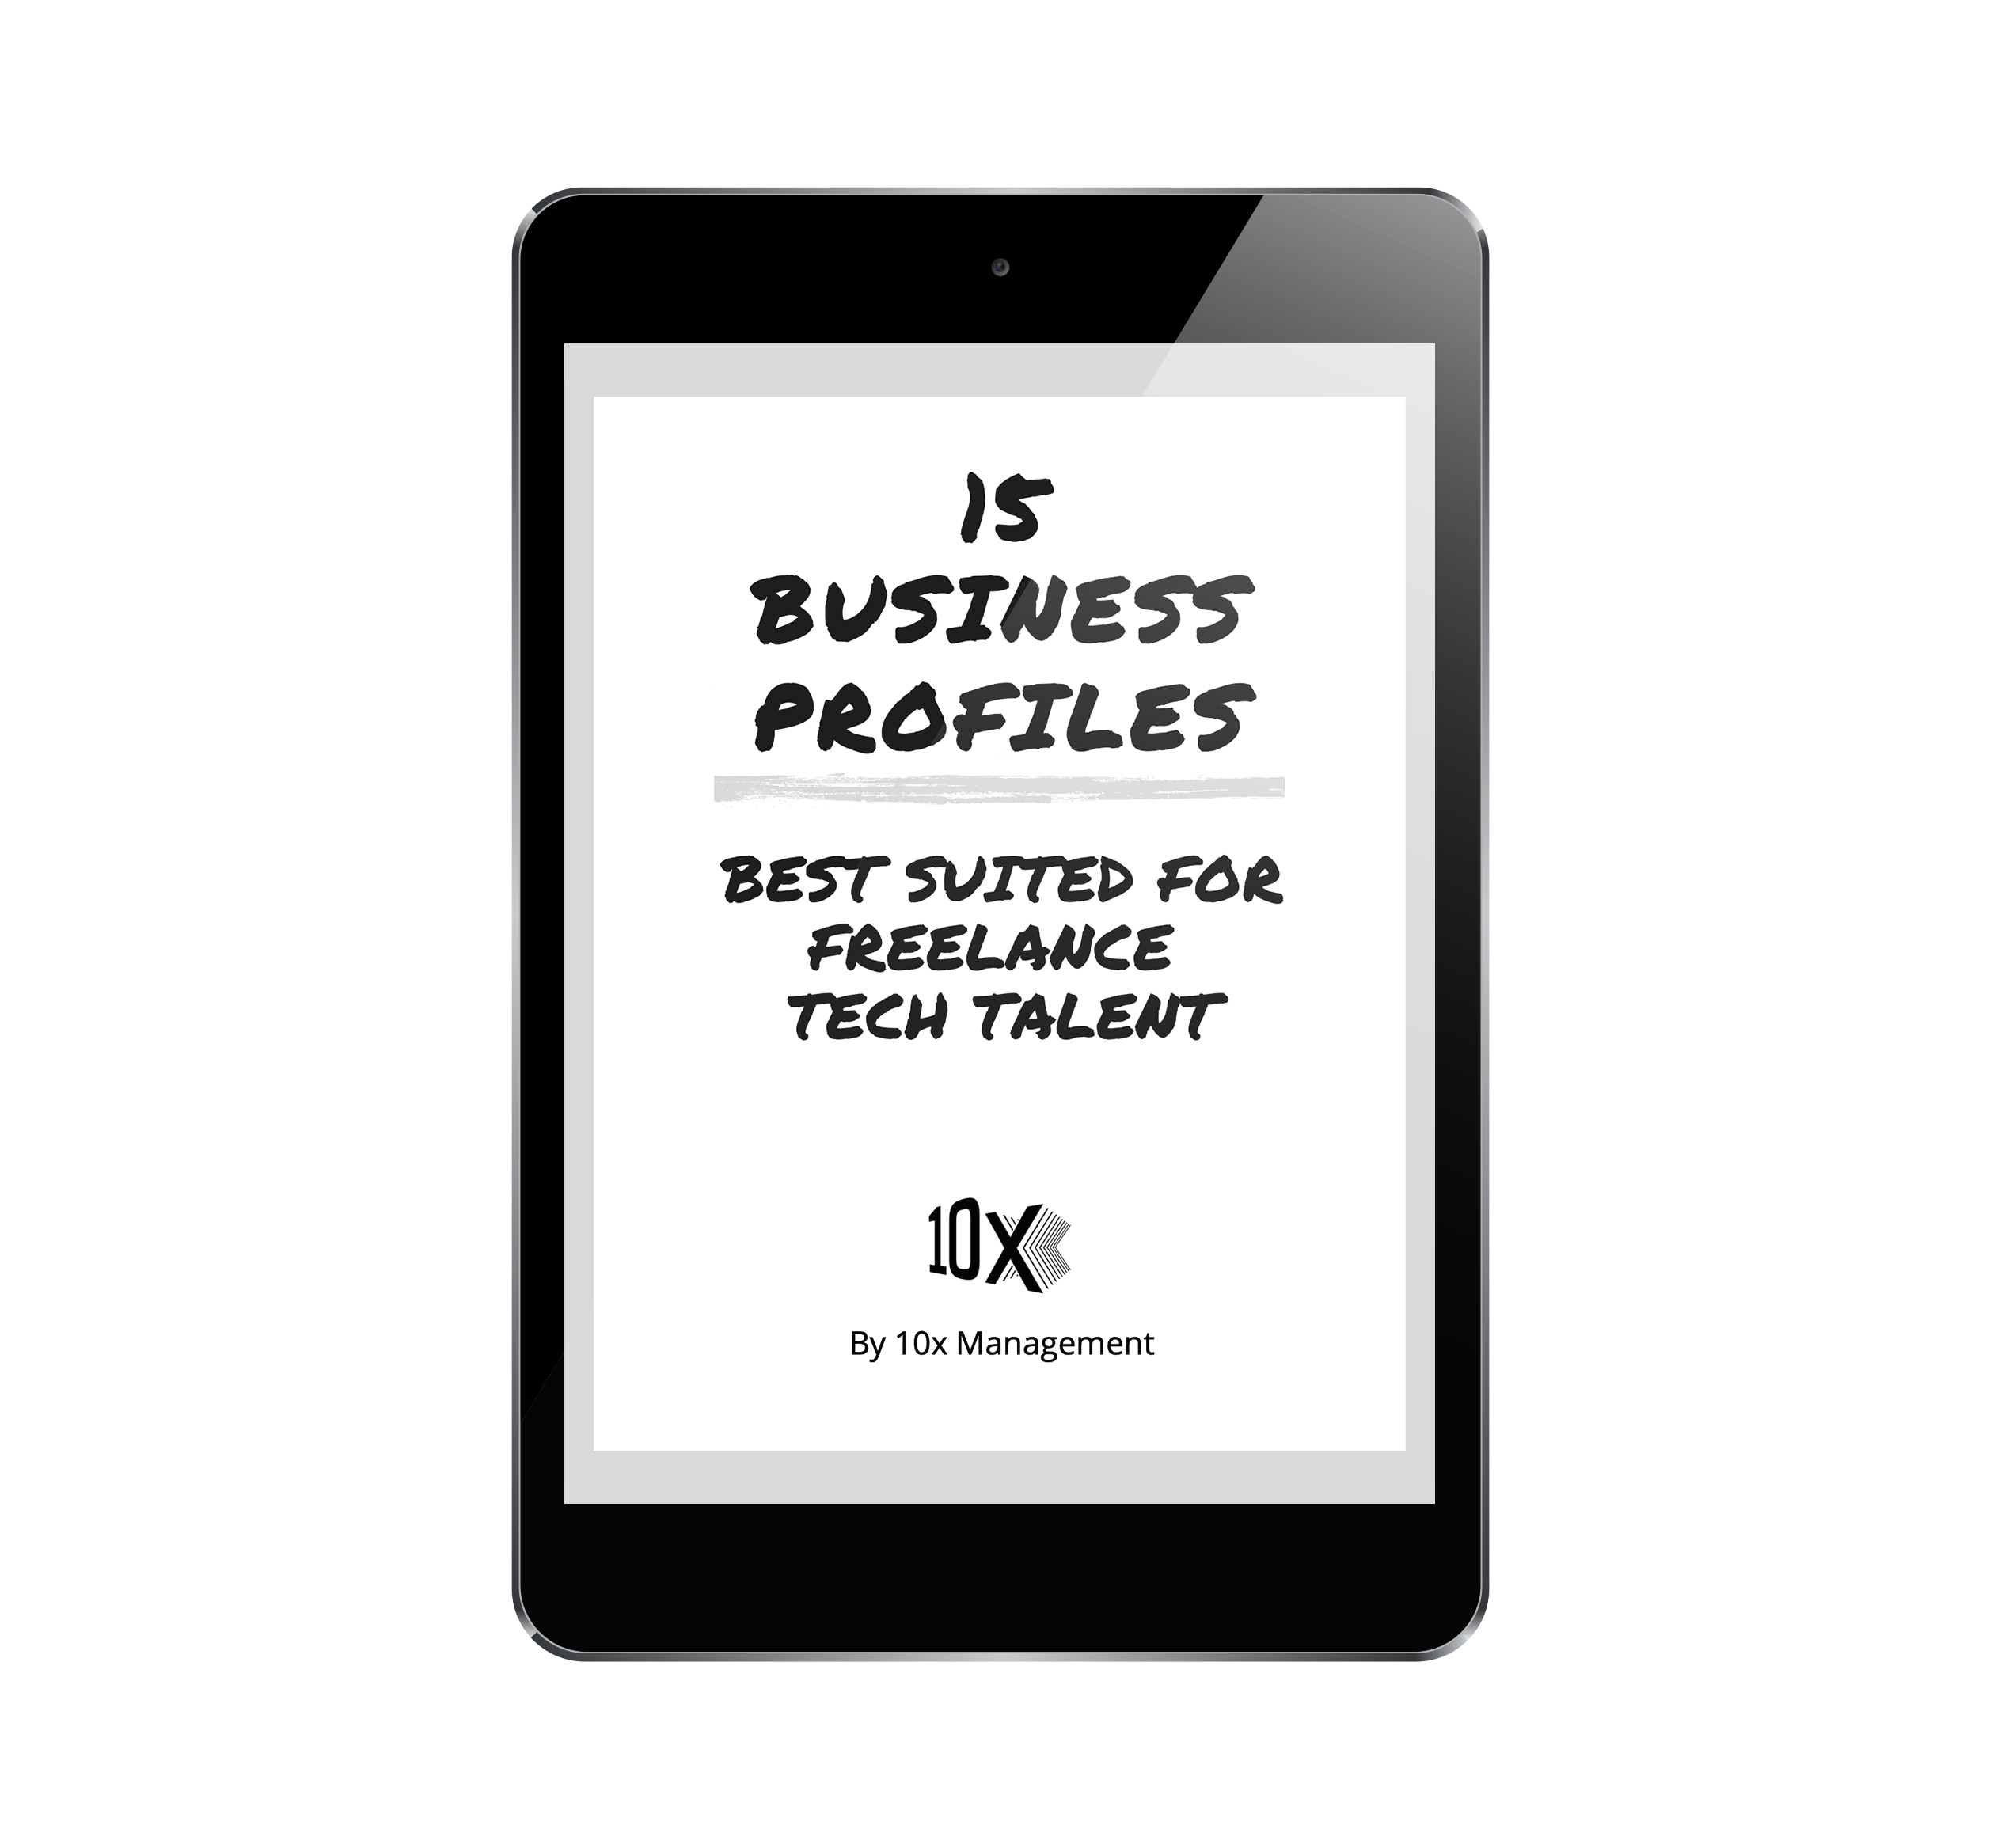 15 Business Profiles Best Suited for Freelancer Tech Talent_iPad